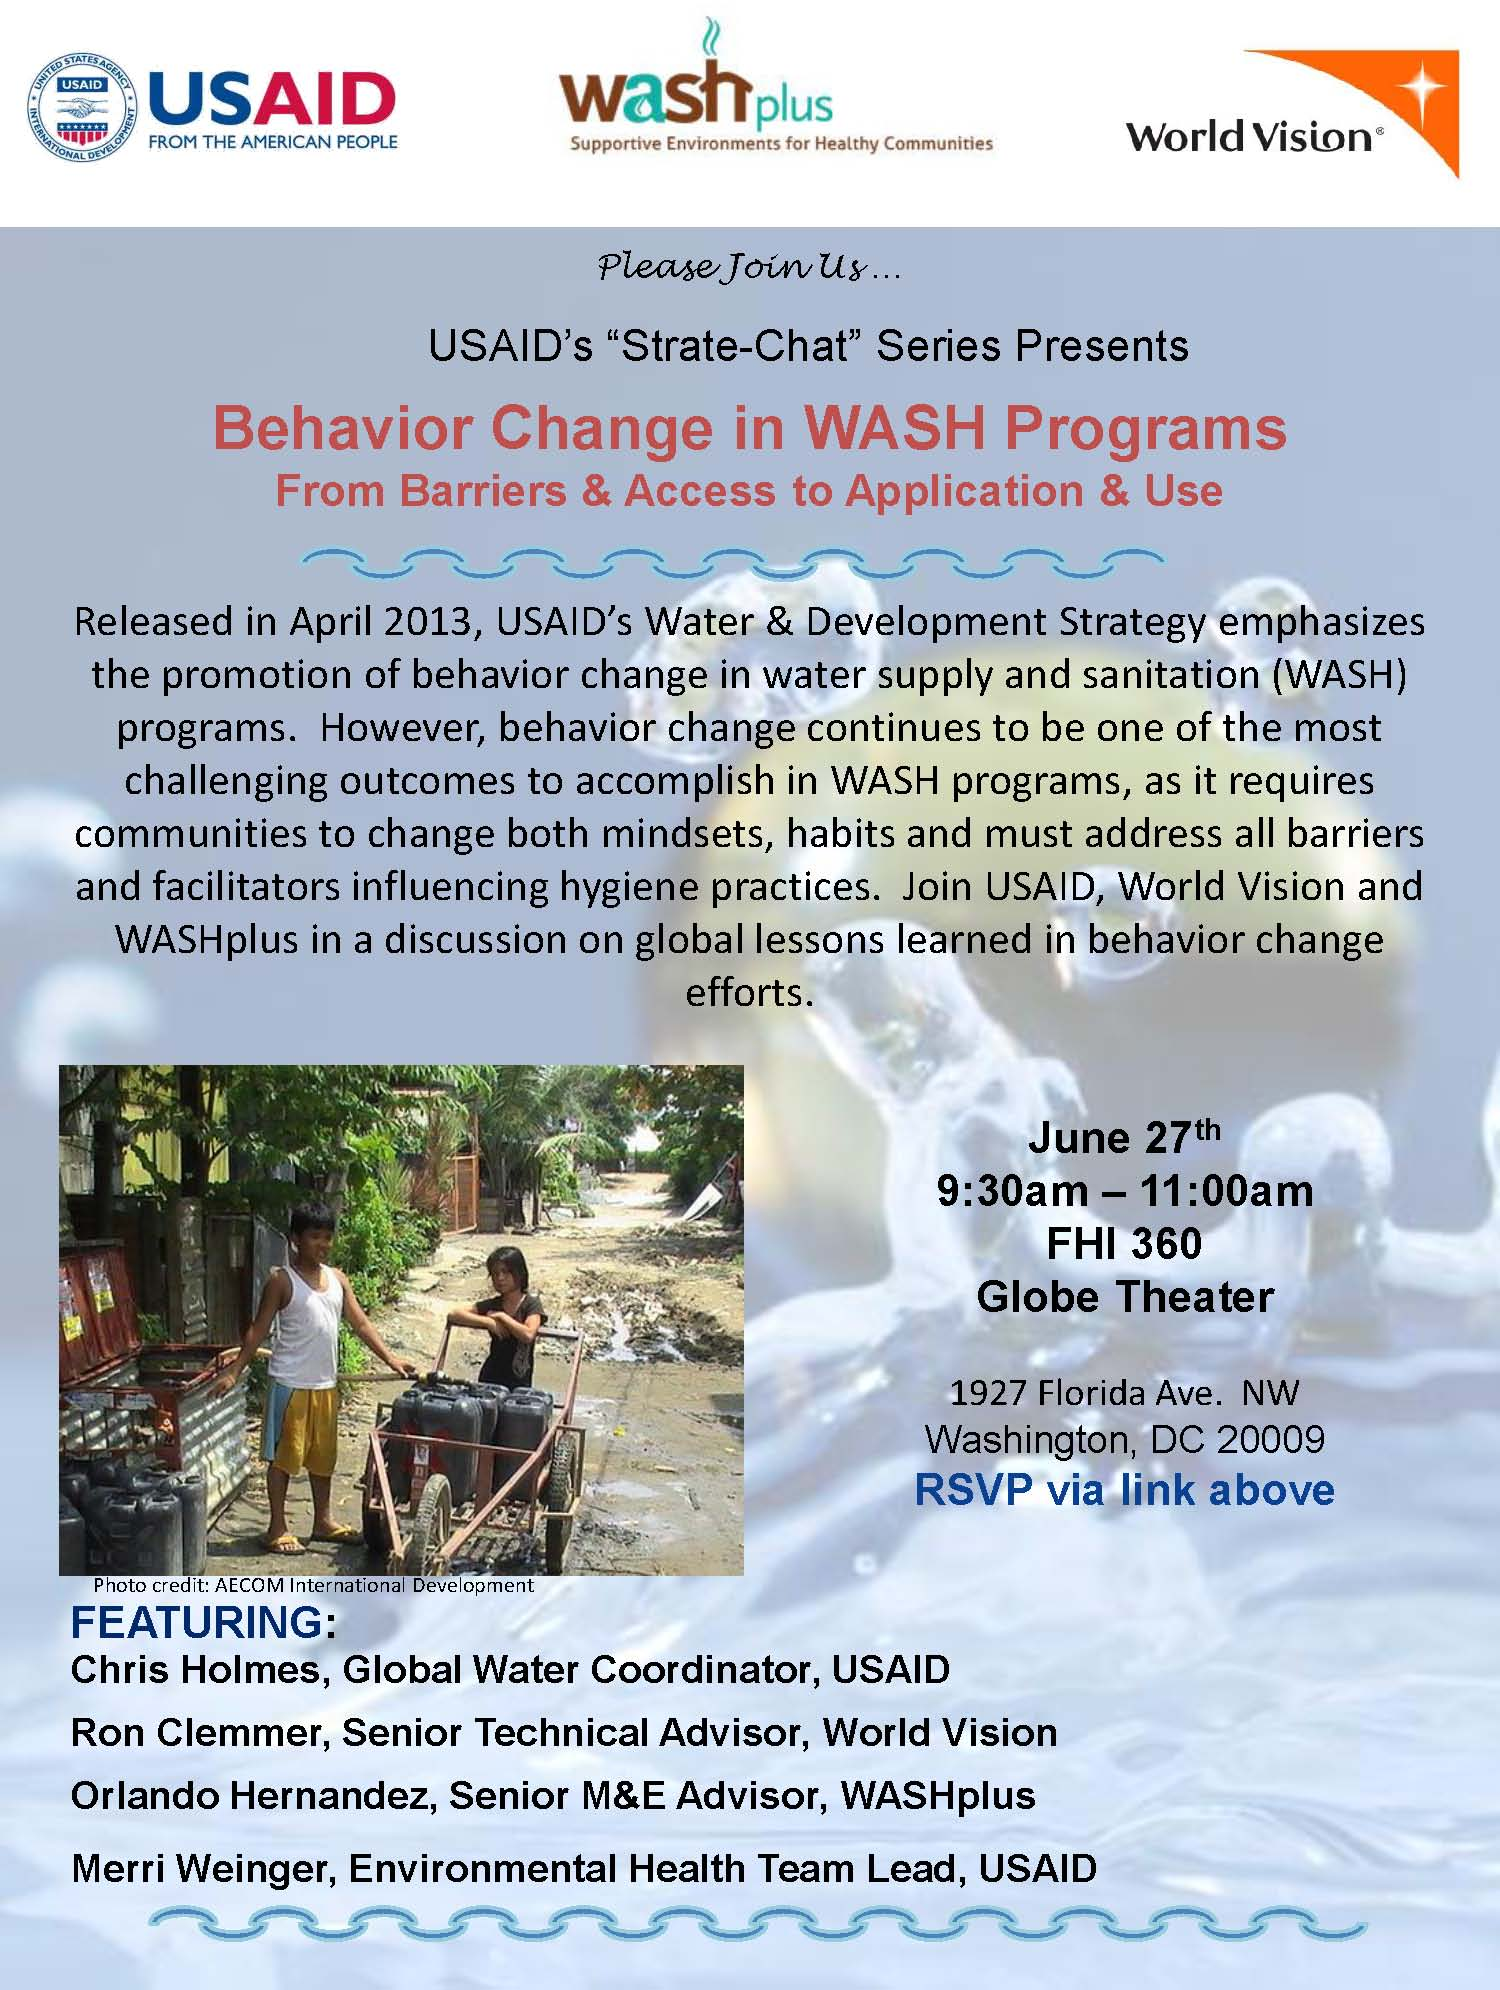 Invitation from the Behavior Change in WASH Programs: From Barriers & Access to Application & Use learning event.